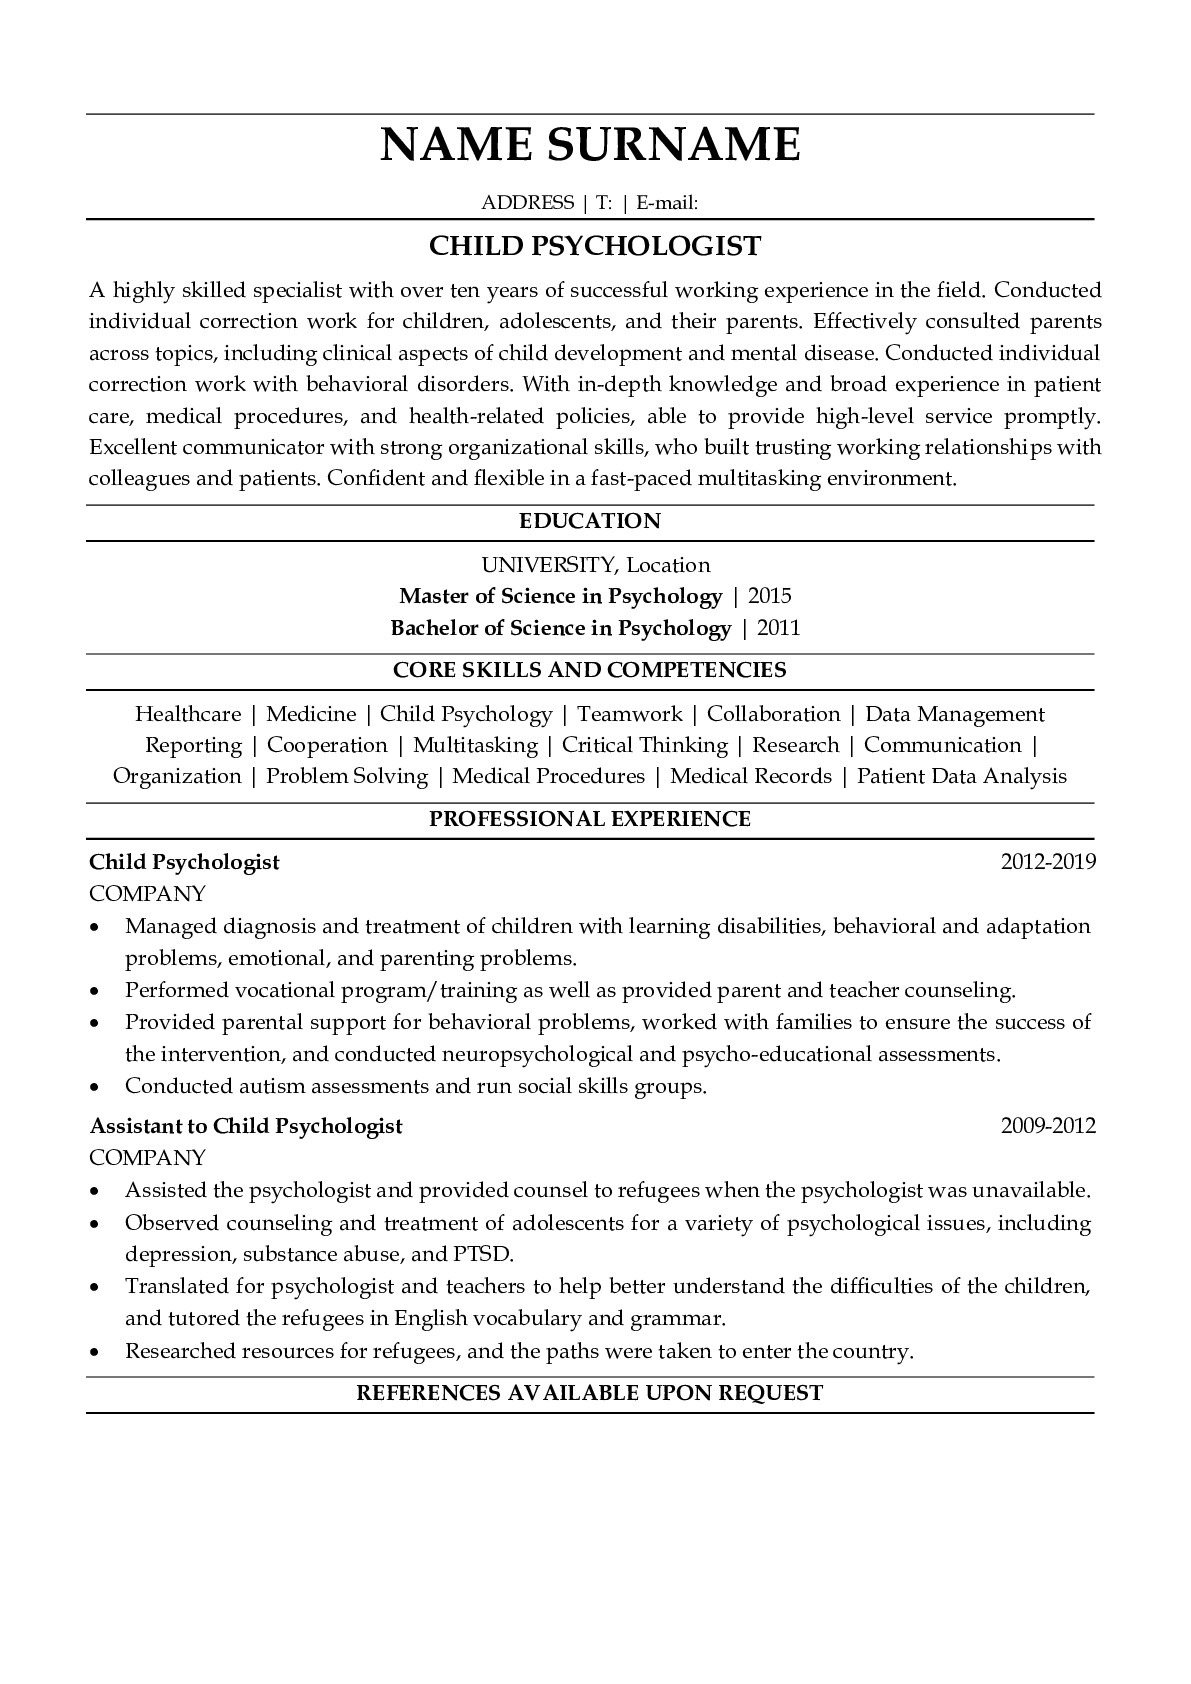 Resume Example for Child Psychologist